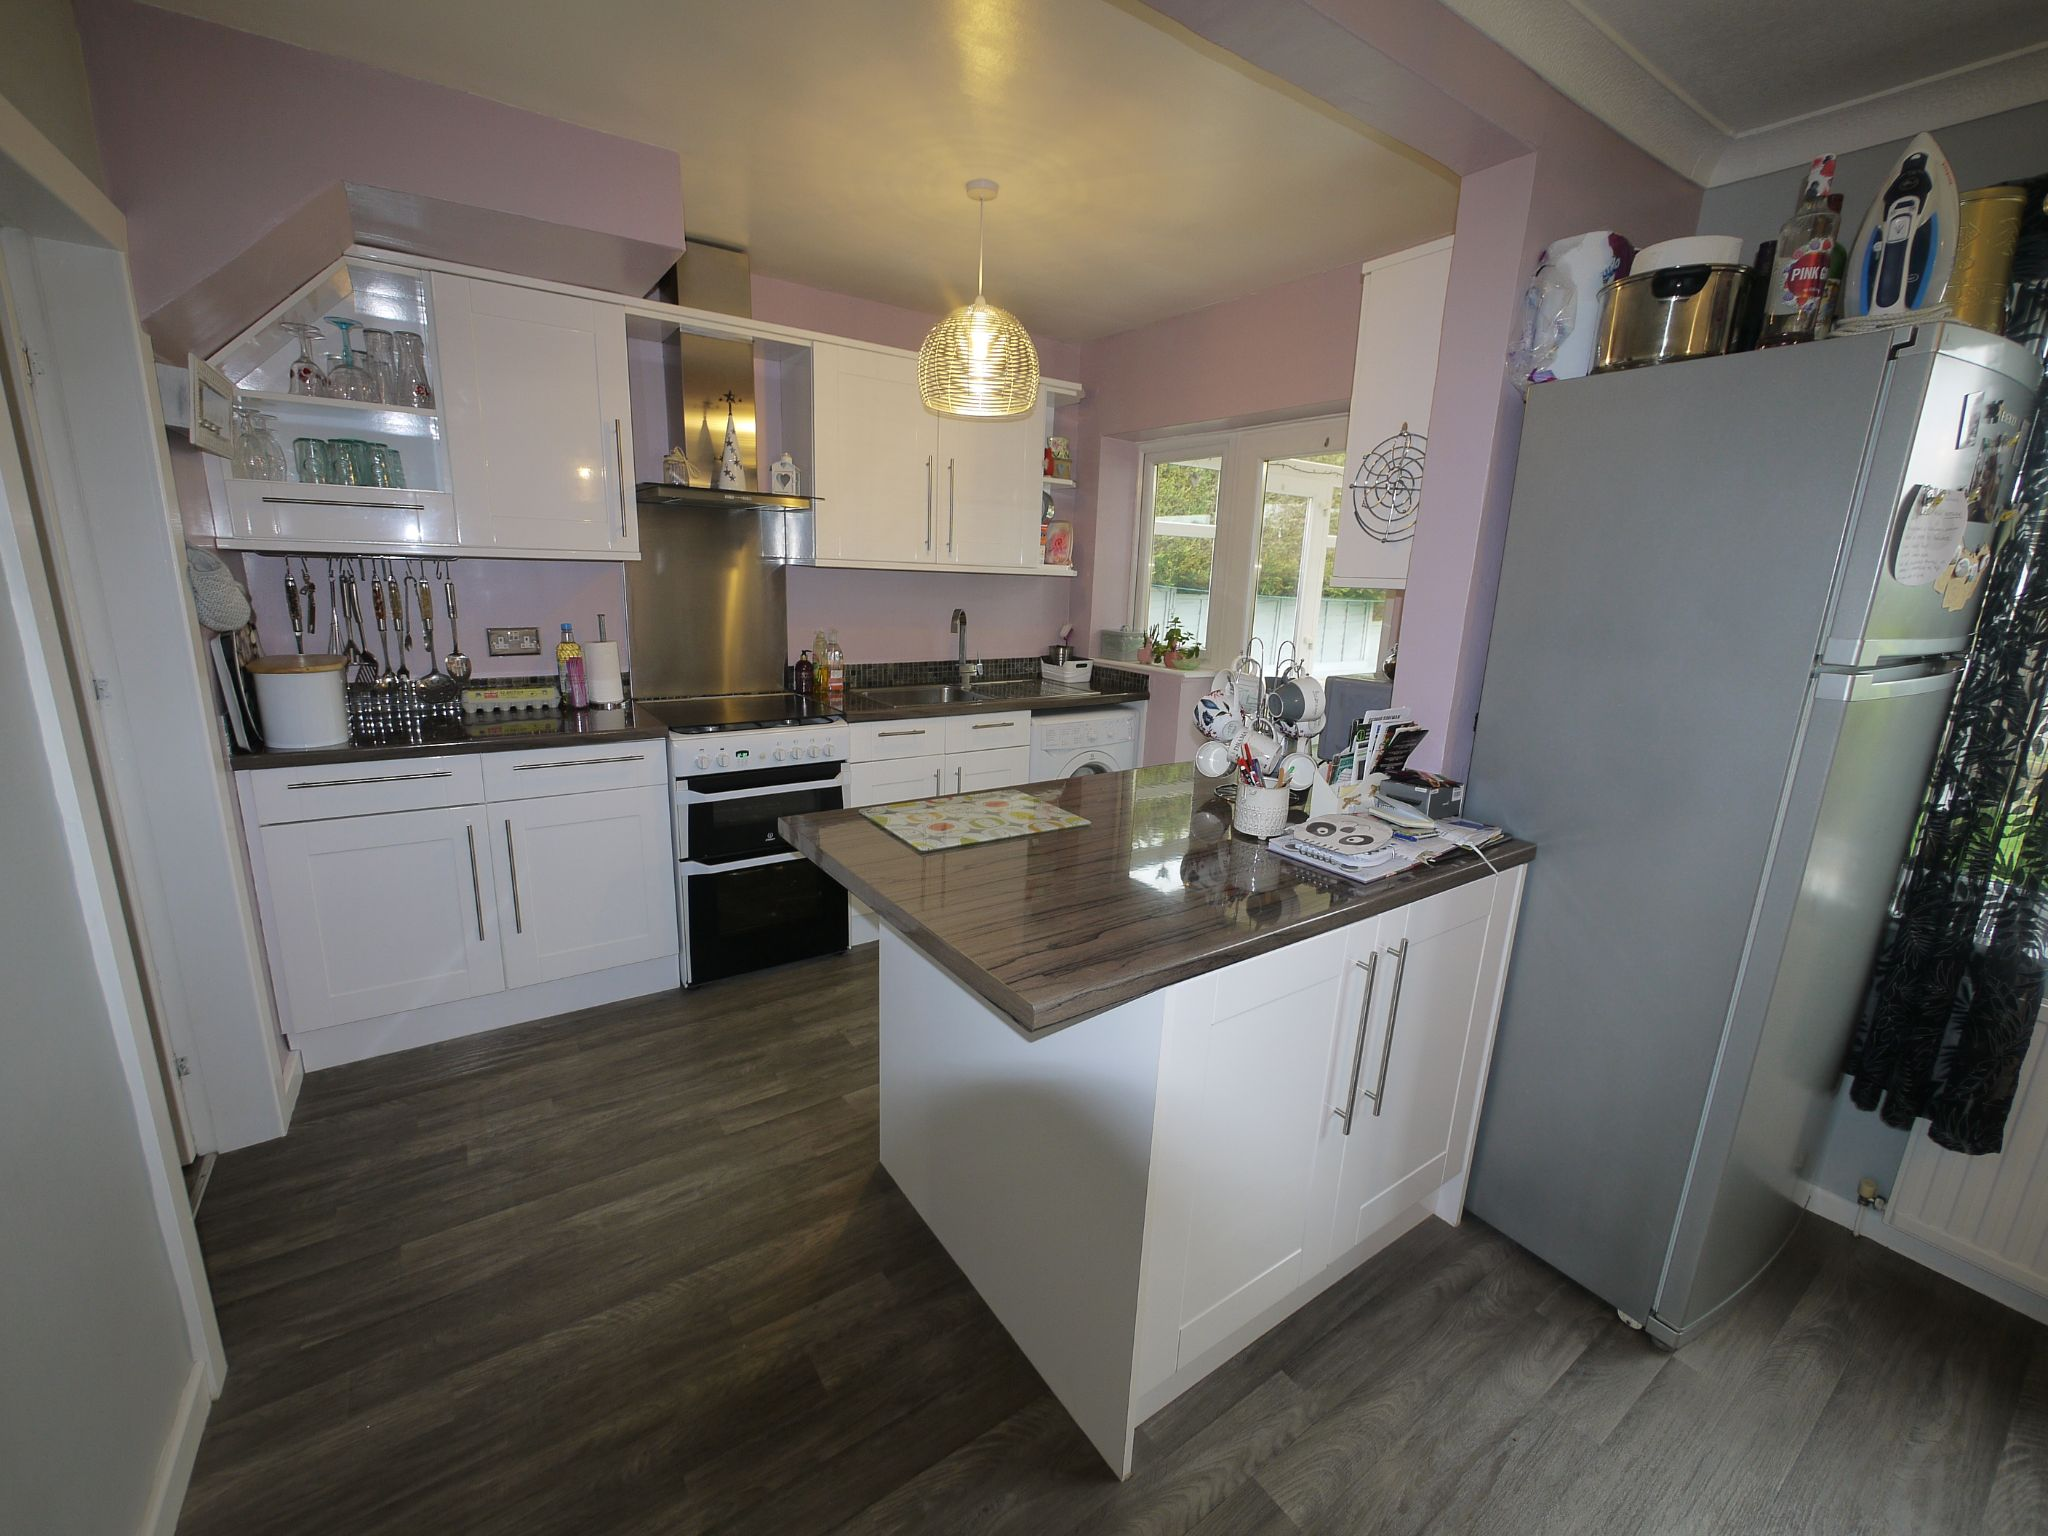 3 bedroom semi-detached house SSTC in Brighouse - Kitchen.